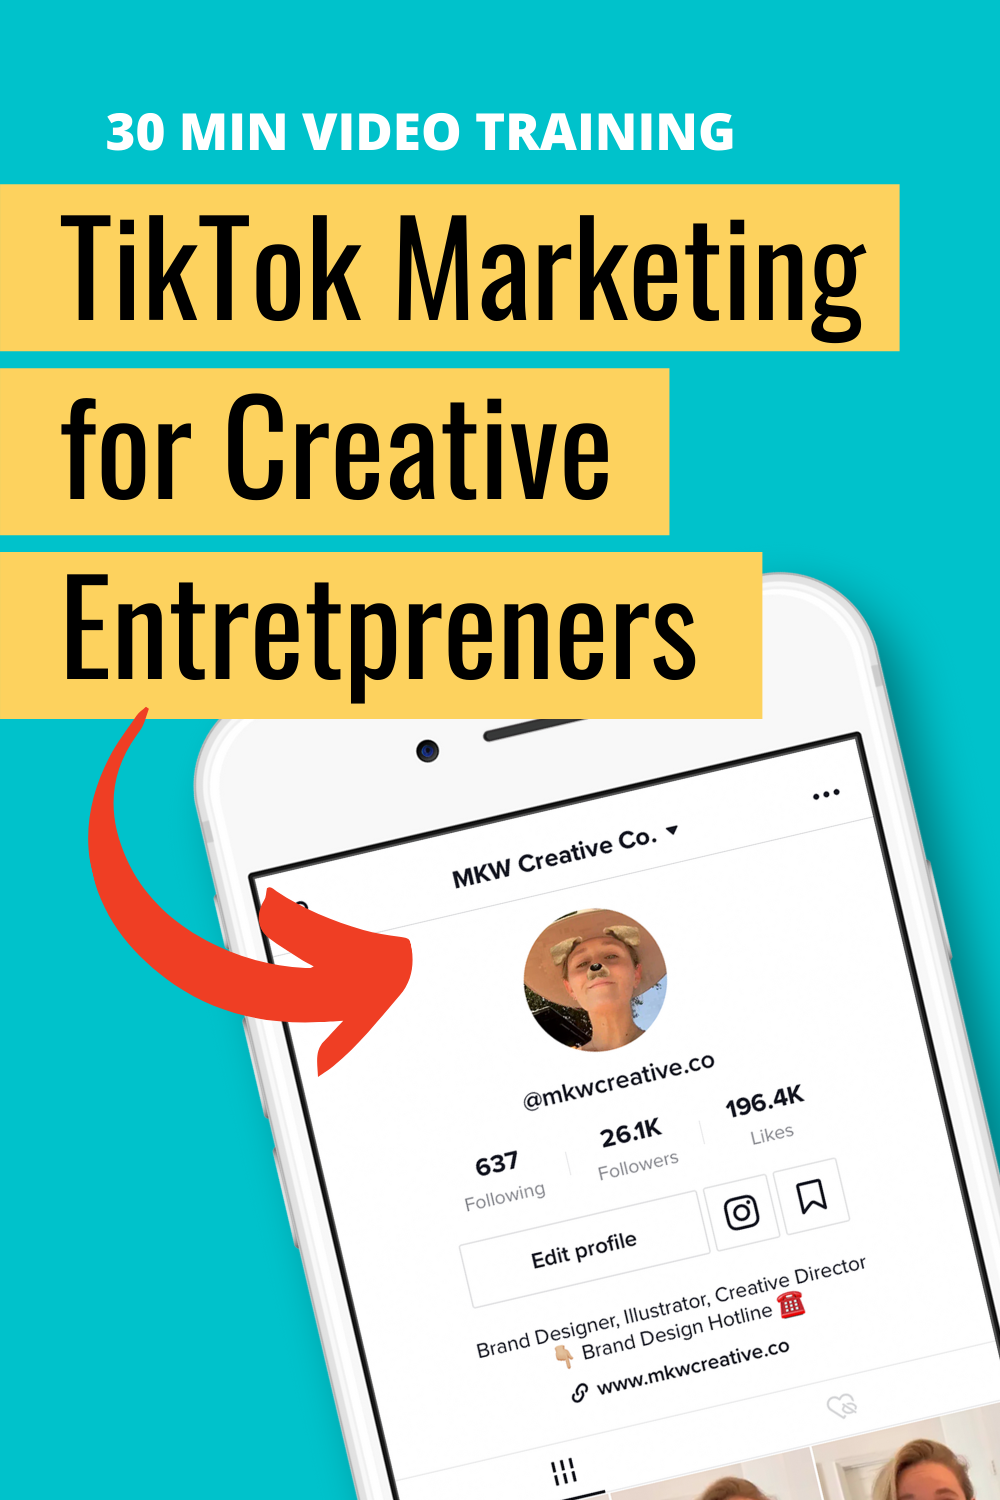 Tiktok For Business Video Training Mkw Creative Co Personal Marketing Business Video Social Media Advice